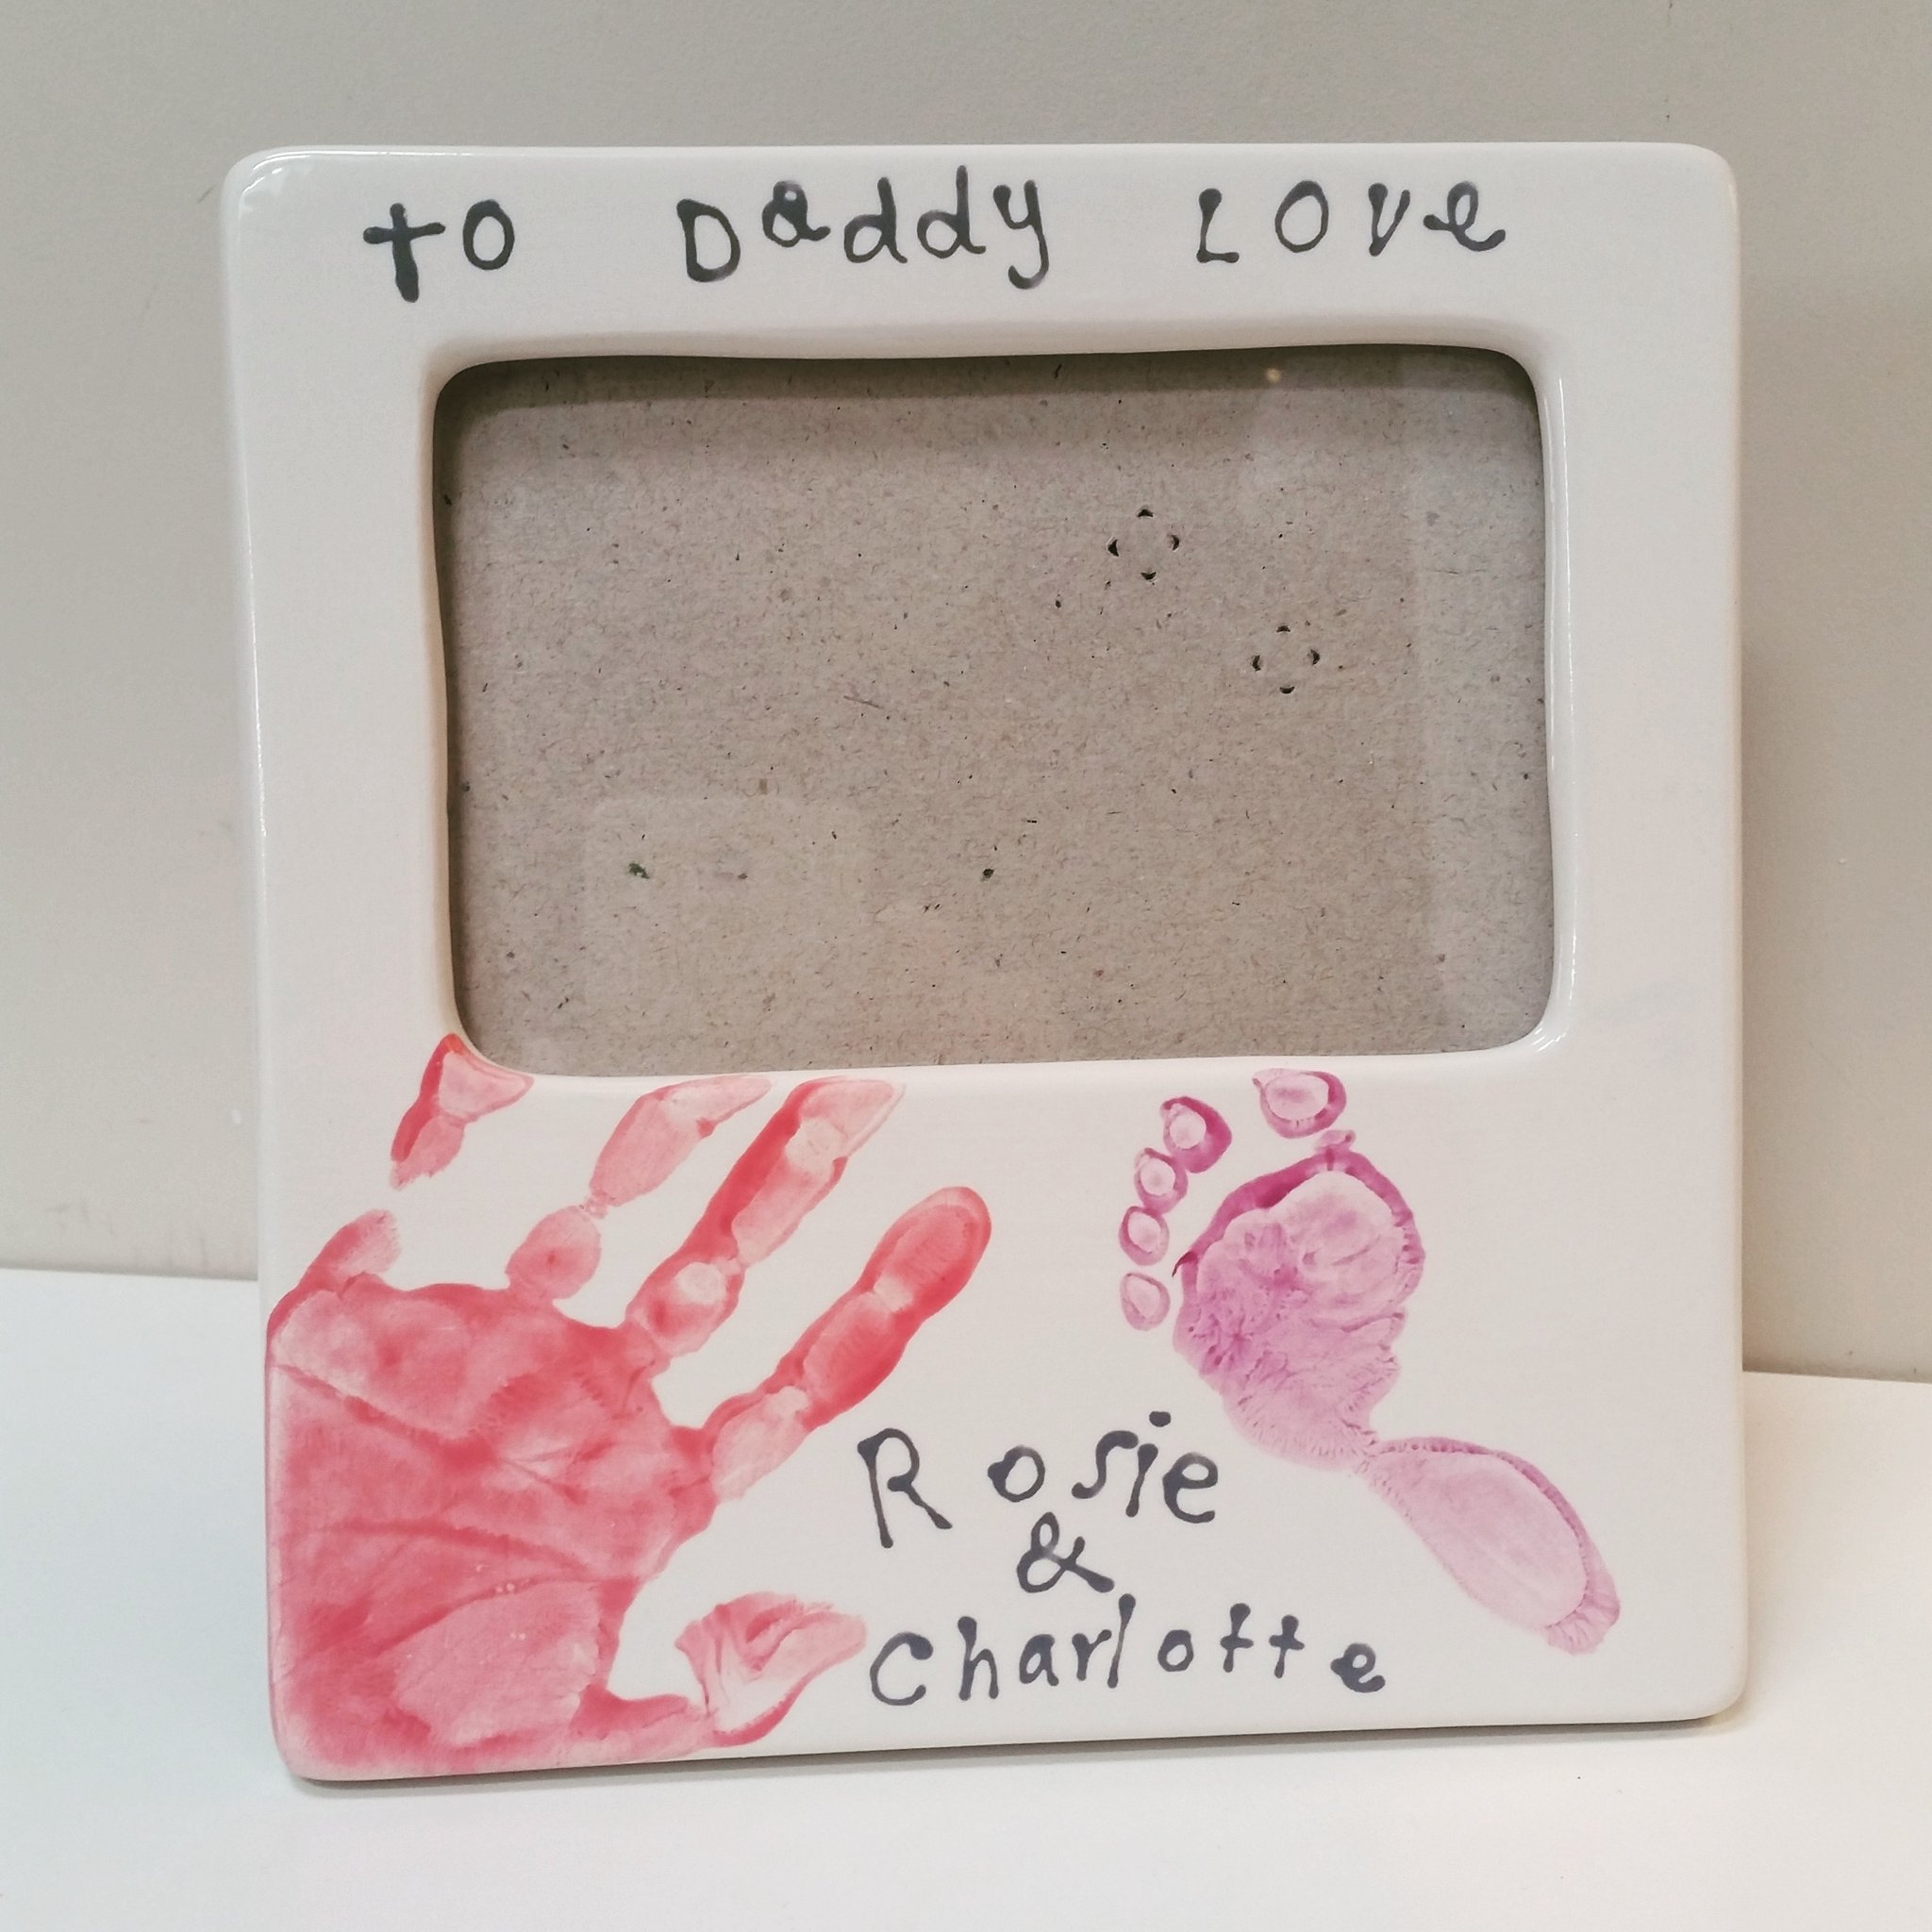 Flying_Colours_Pottery_Mobile_pottery_painting_Bromley_babyfootprint_plate_treasured_keepsake_fathers_day